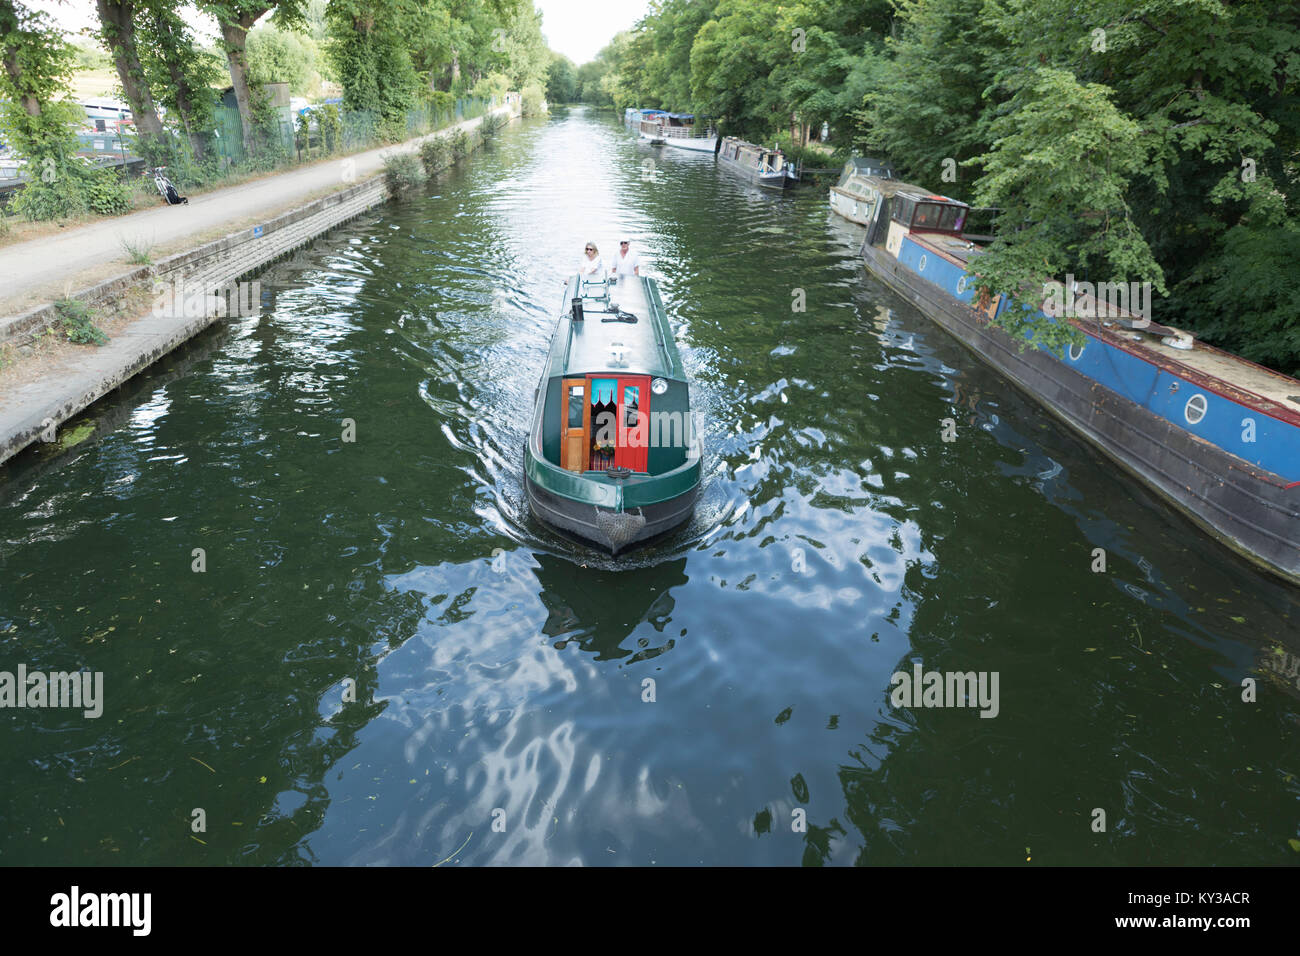 UK, Oxford, canal boat on the Oxford canal. - Stock Image